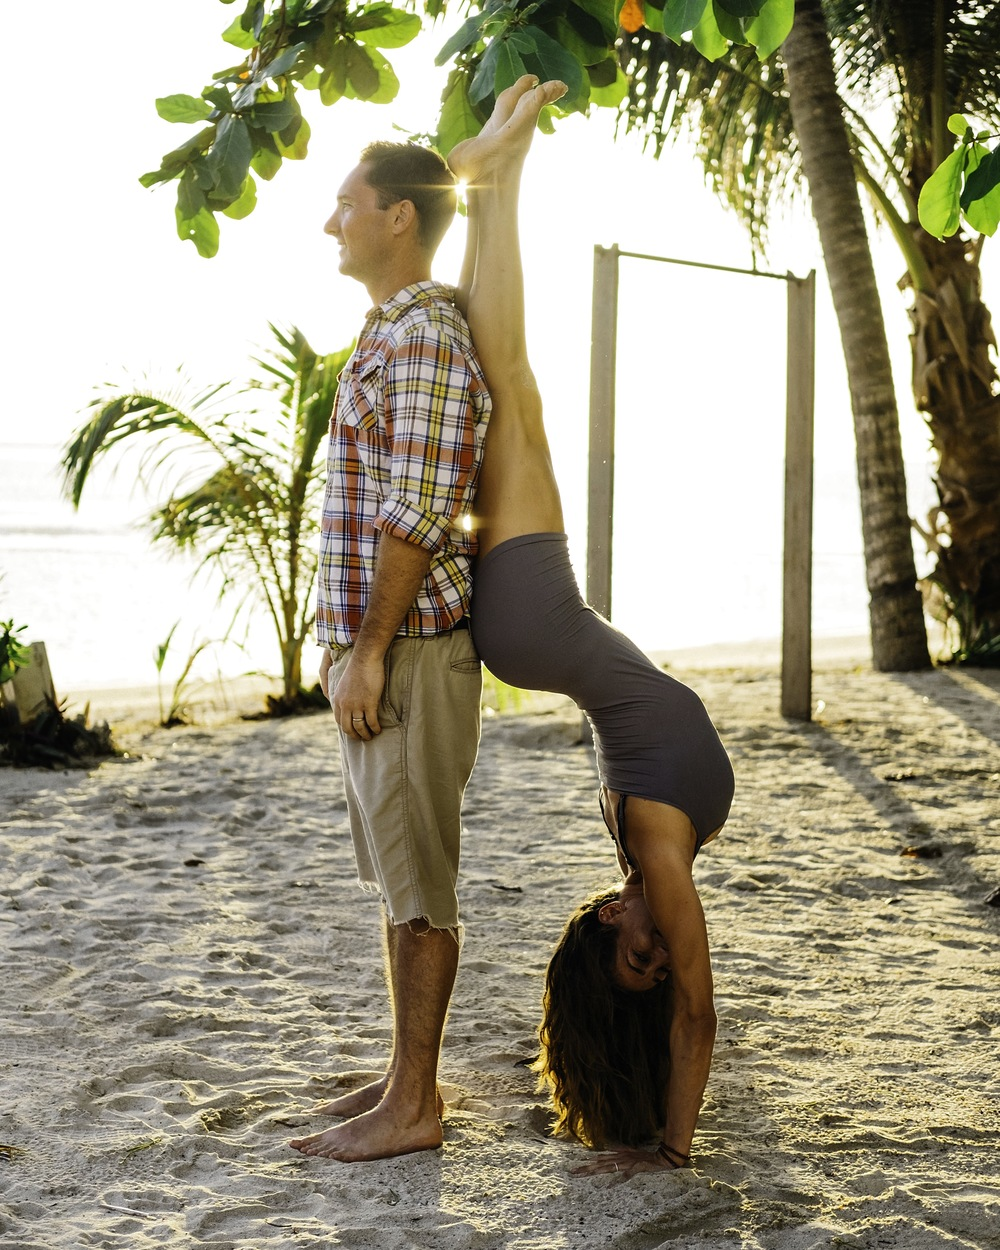 Photoshoot with Emily & Steve of  Emily and Steve  Photography. I had to sneak a yoga shot in, of course!